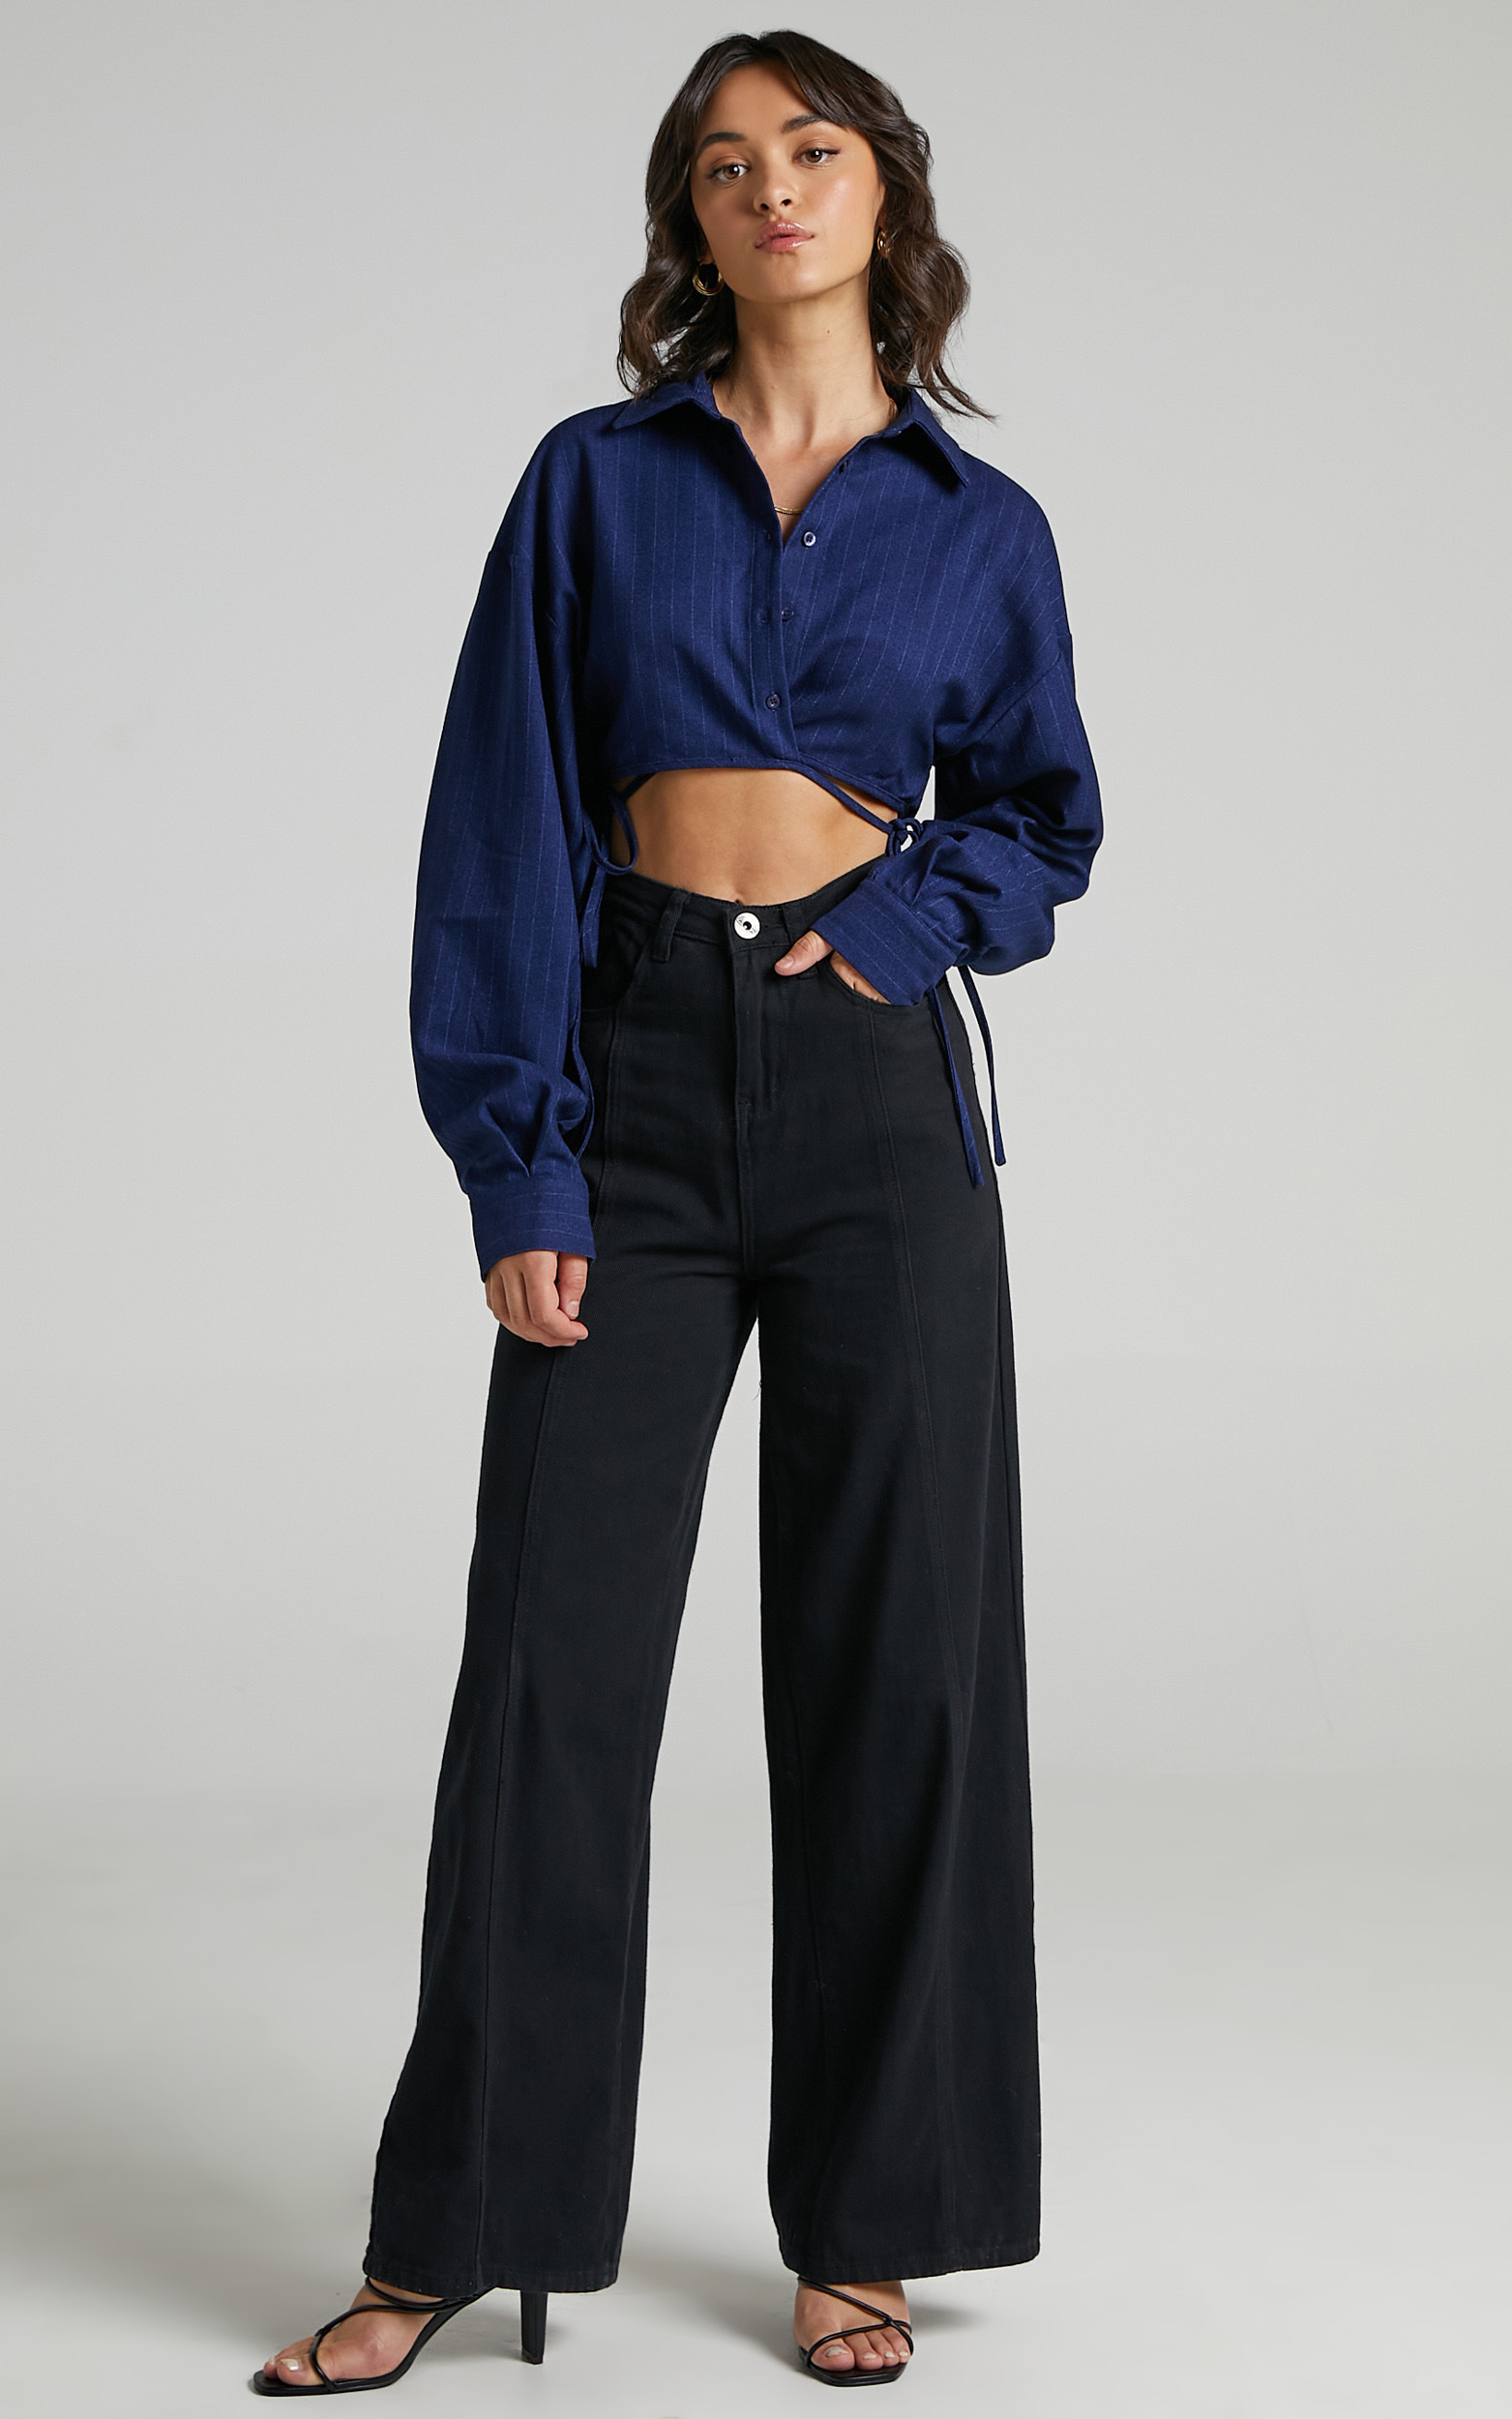 Lioness - Hideaway Crop Shirt in Midnight Pinstripe - L, BLU1, hi-res image number null